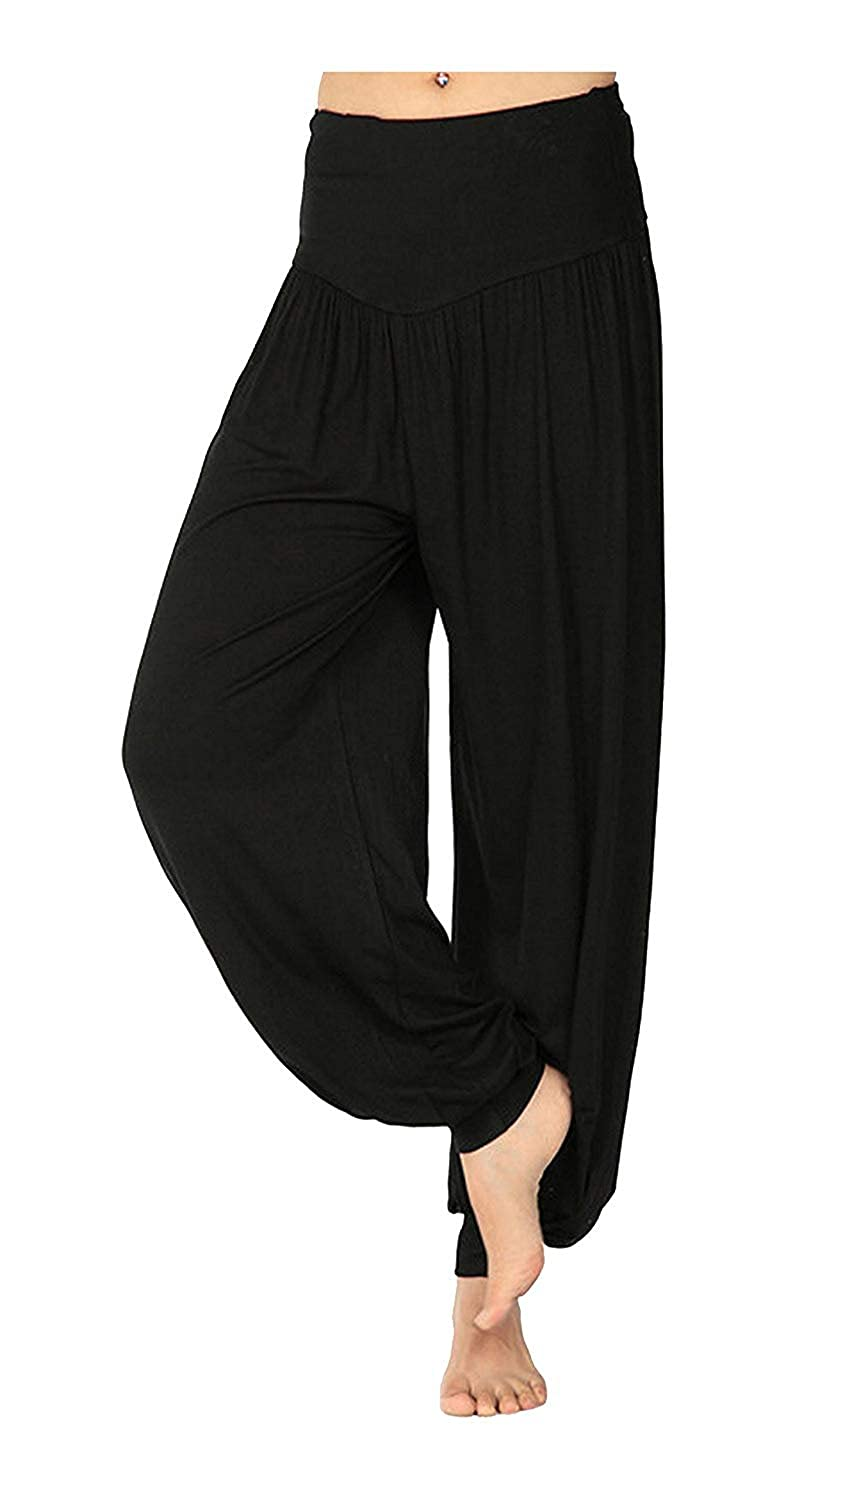 New Womens Harem Baggy Ladies Plain Ali Baba Full Length Baggy Trousers Legging